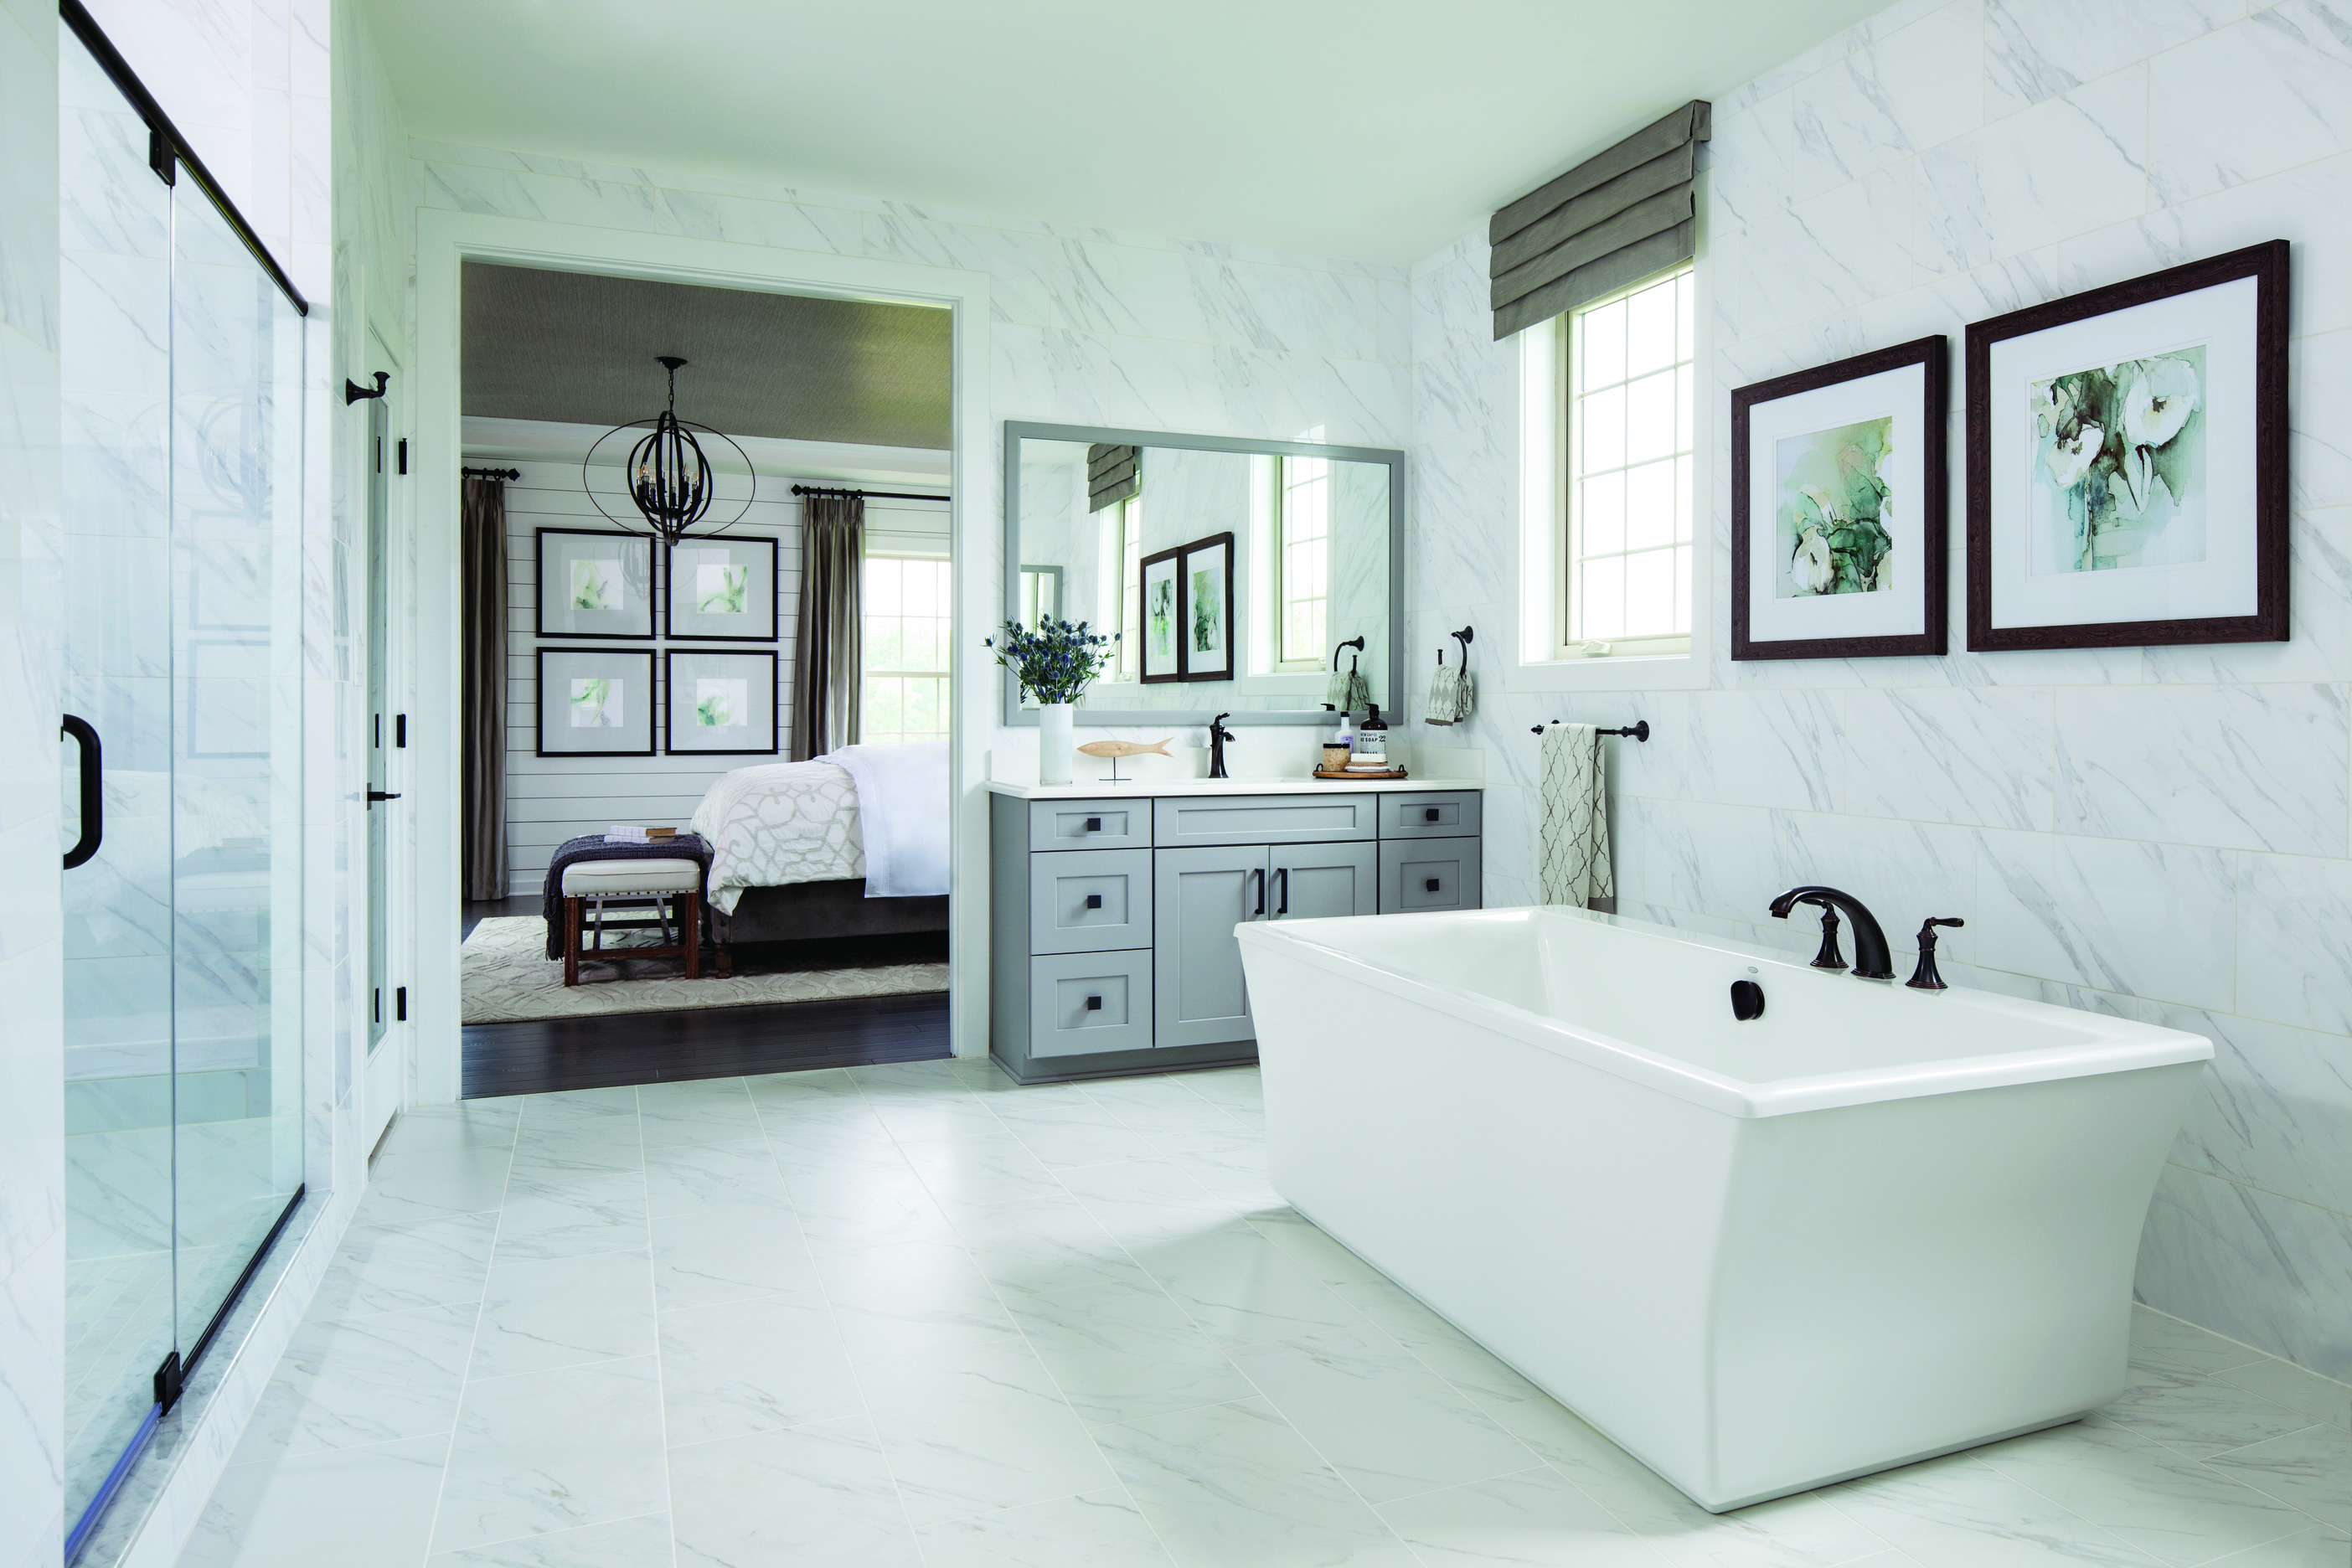 Luxury bathroom with free standing tub.